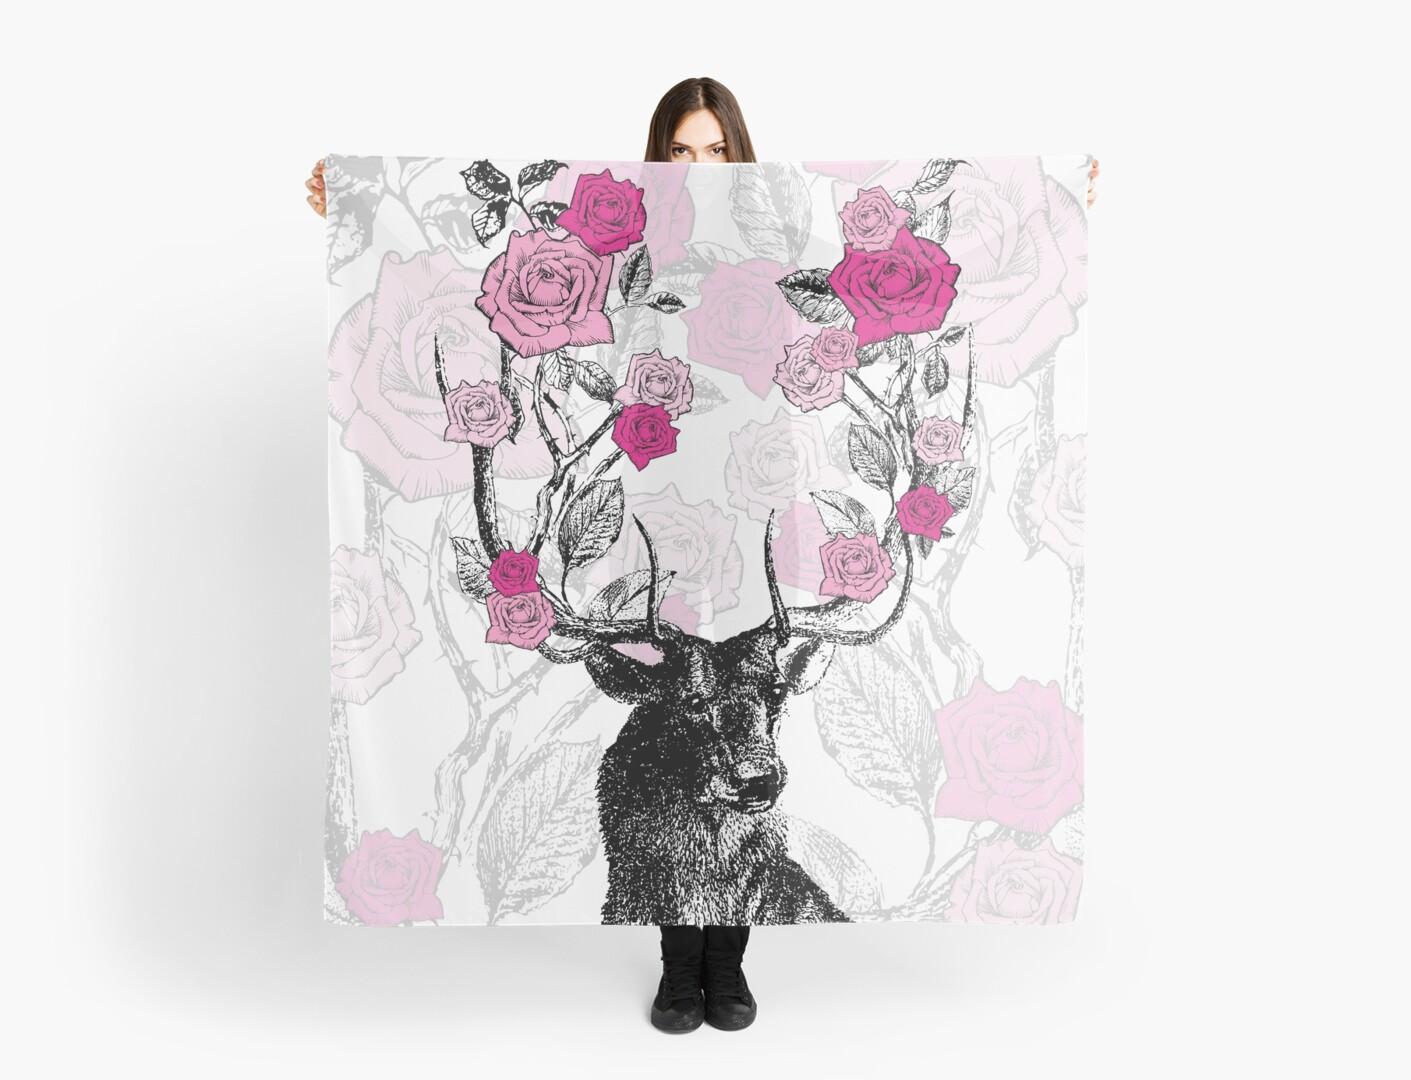 The Stag and Roses by EclecticAtHeART